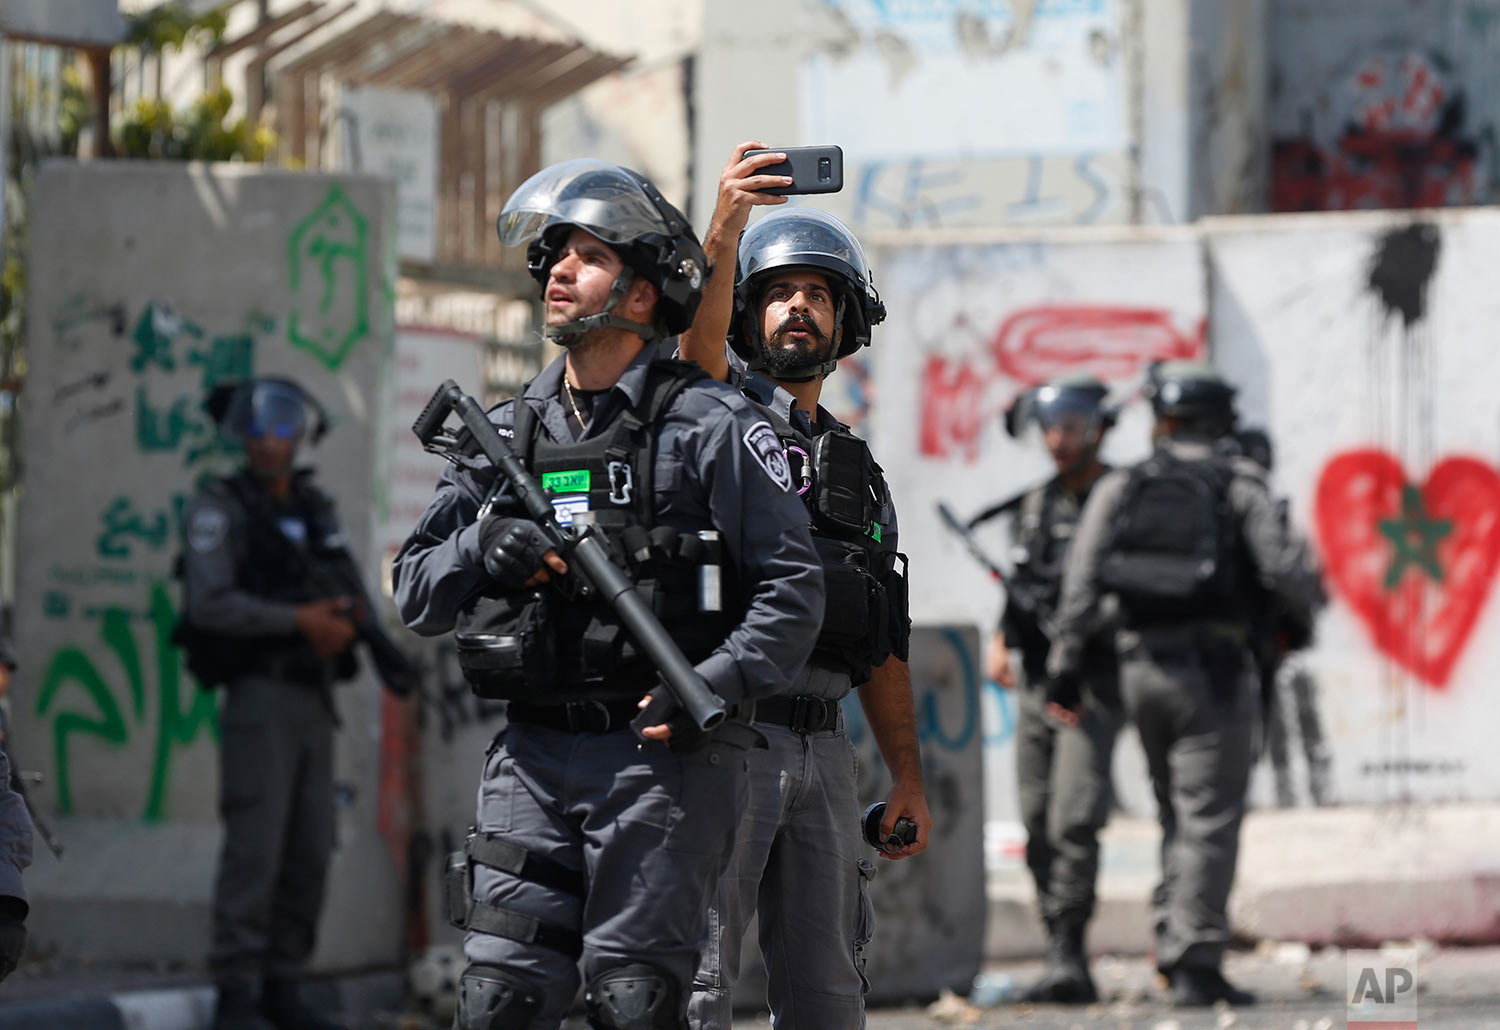 An Israeli border policeman takes a selfie during clashes in the West Bank city of Bethlehem, Friday, July 21, 2017. (AP Photo/Nasser Shiyoukhi)